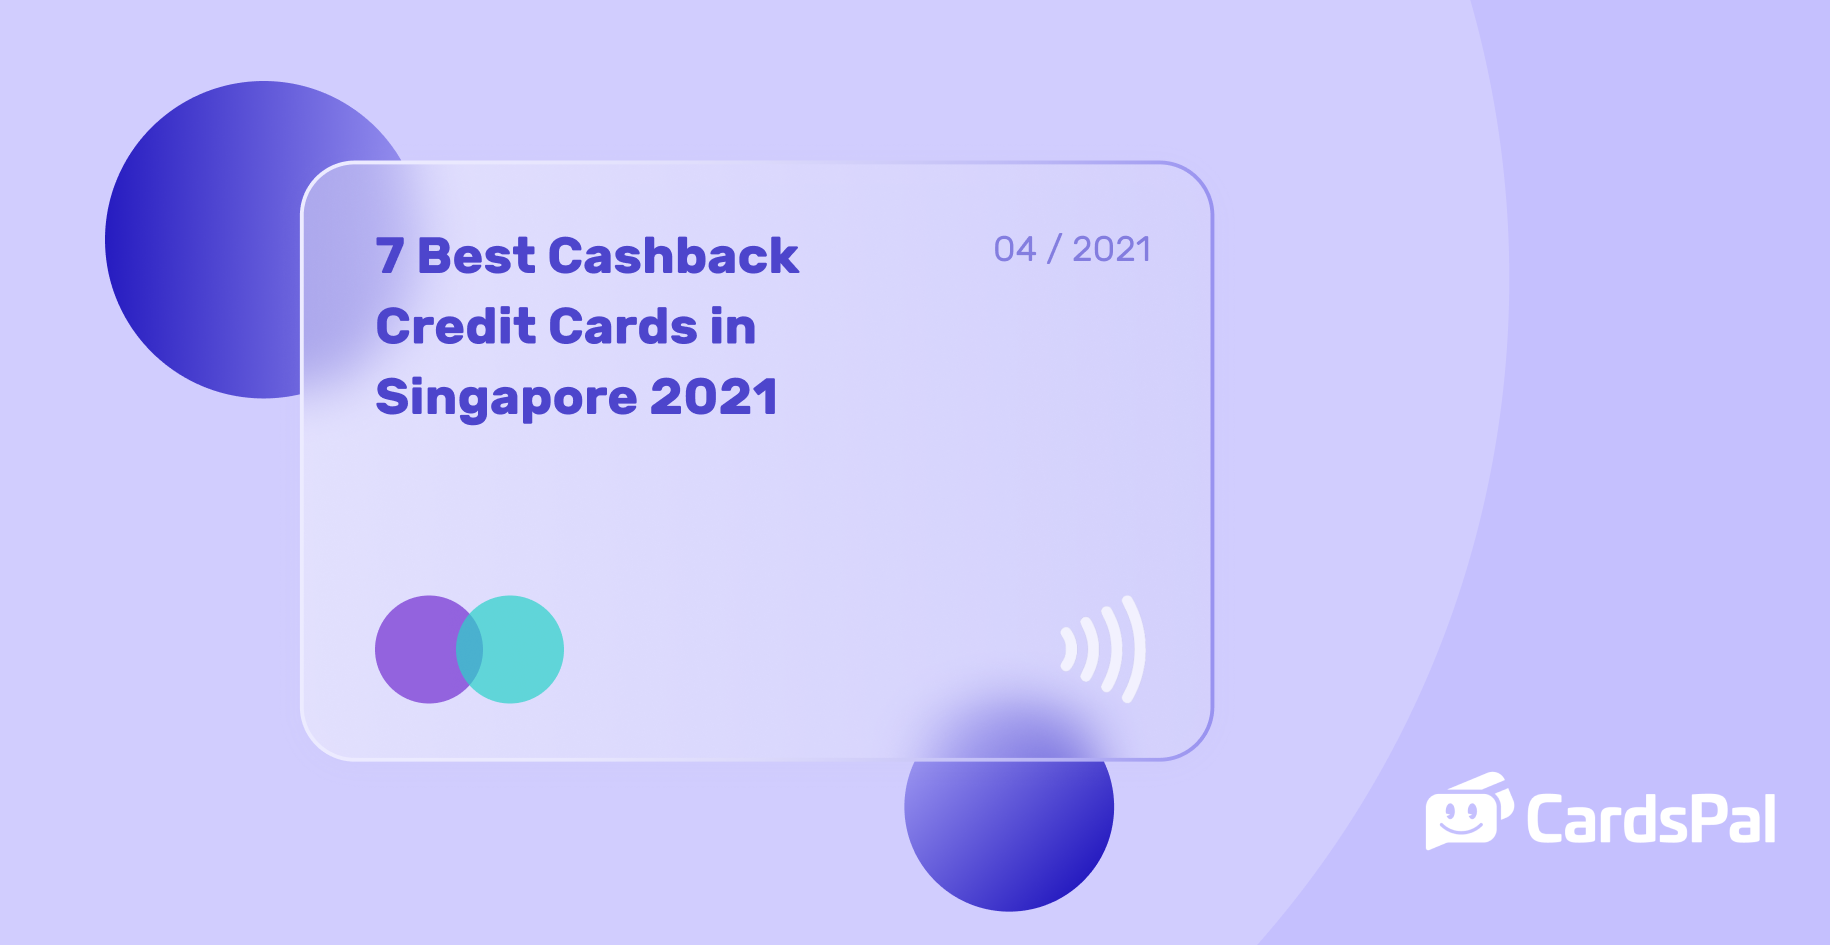 7 Best Cashback Credit Cards in Singapore 2021